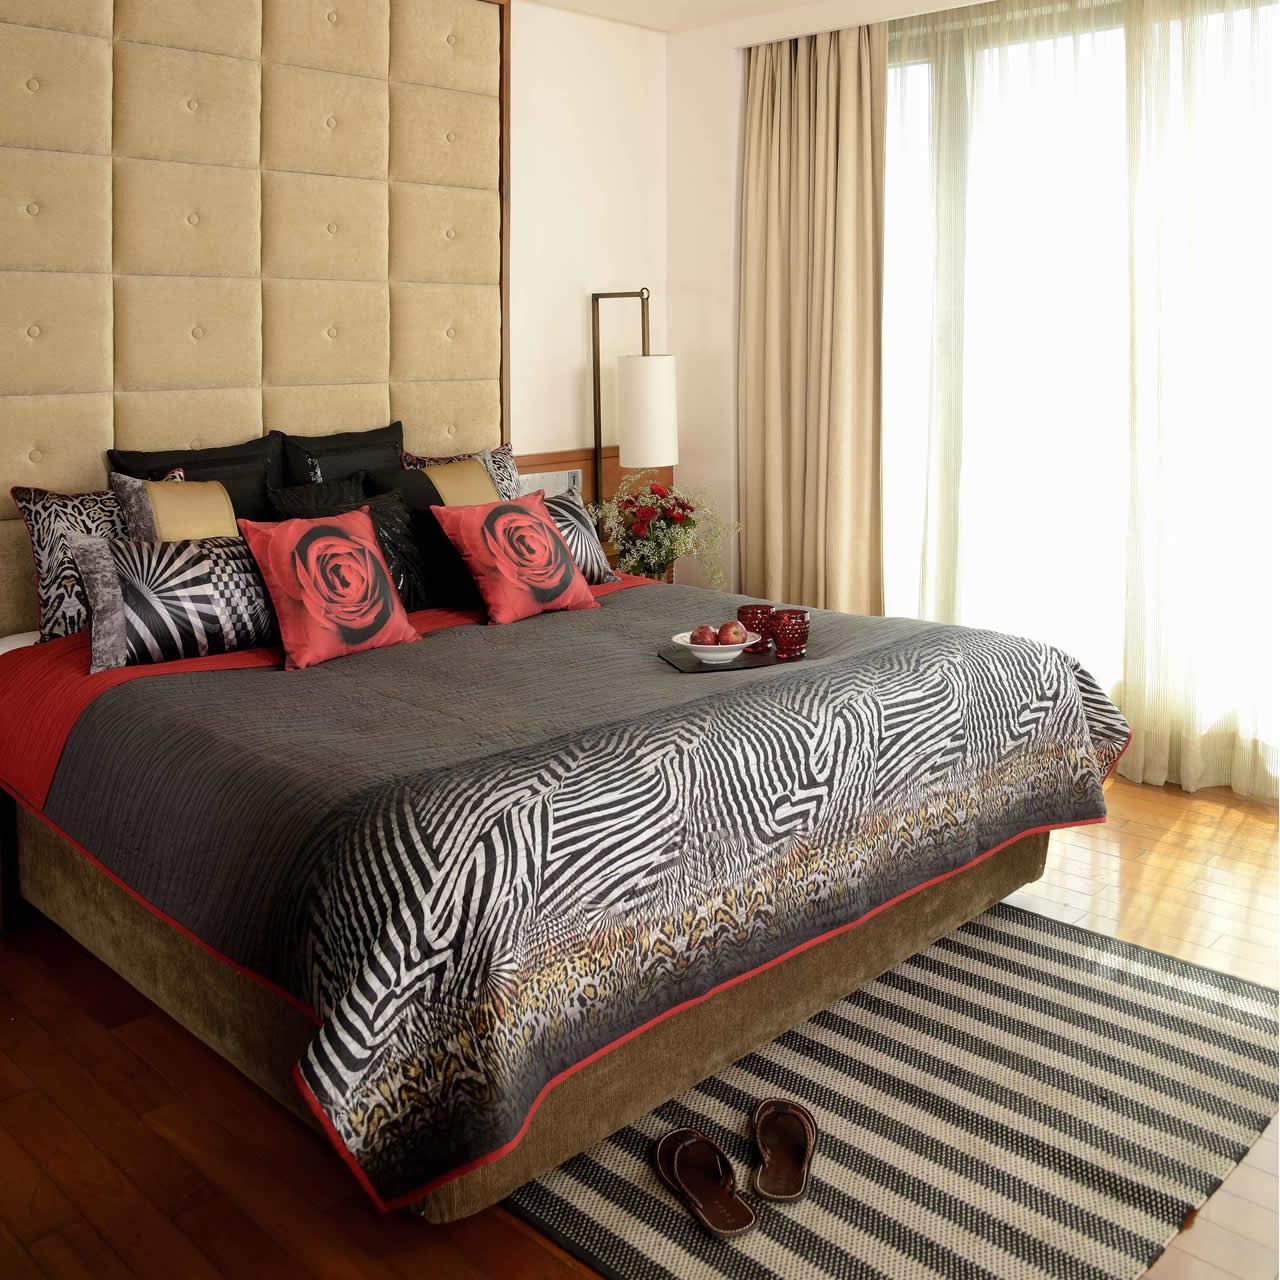 Satya Paul Launches Its First Ever Home Decor Line!